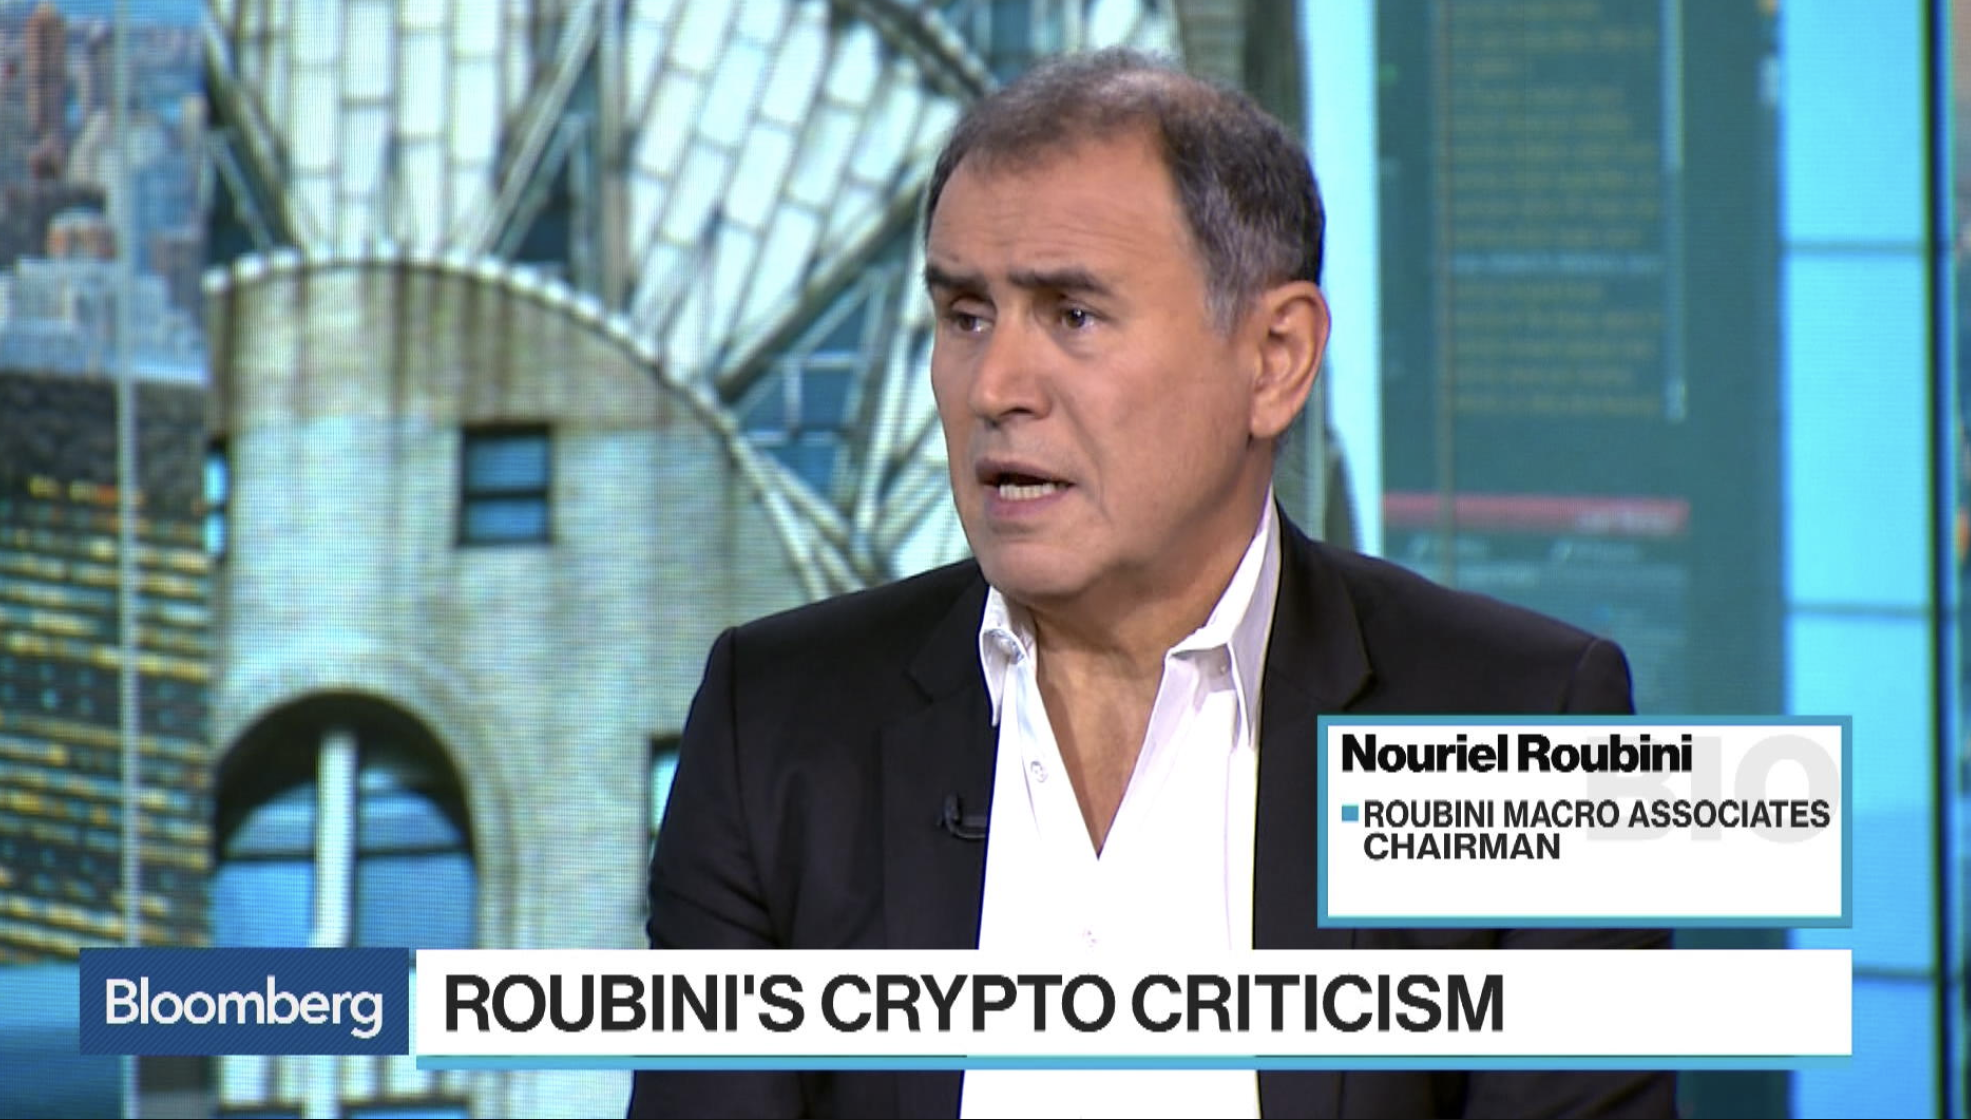 The 10 Stupidest Things Nuriel Roubini Said In His Testimony To The US Senate Committee on Banking